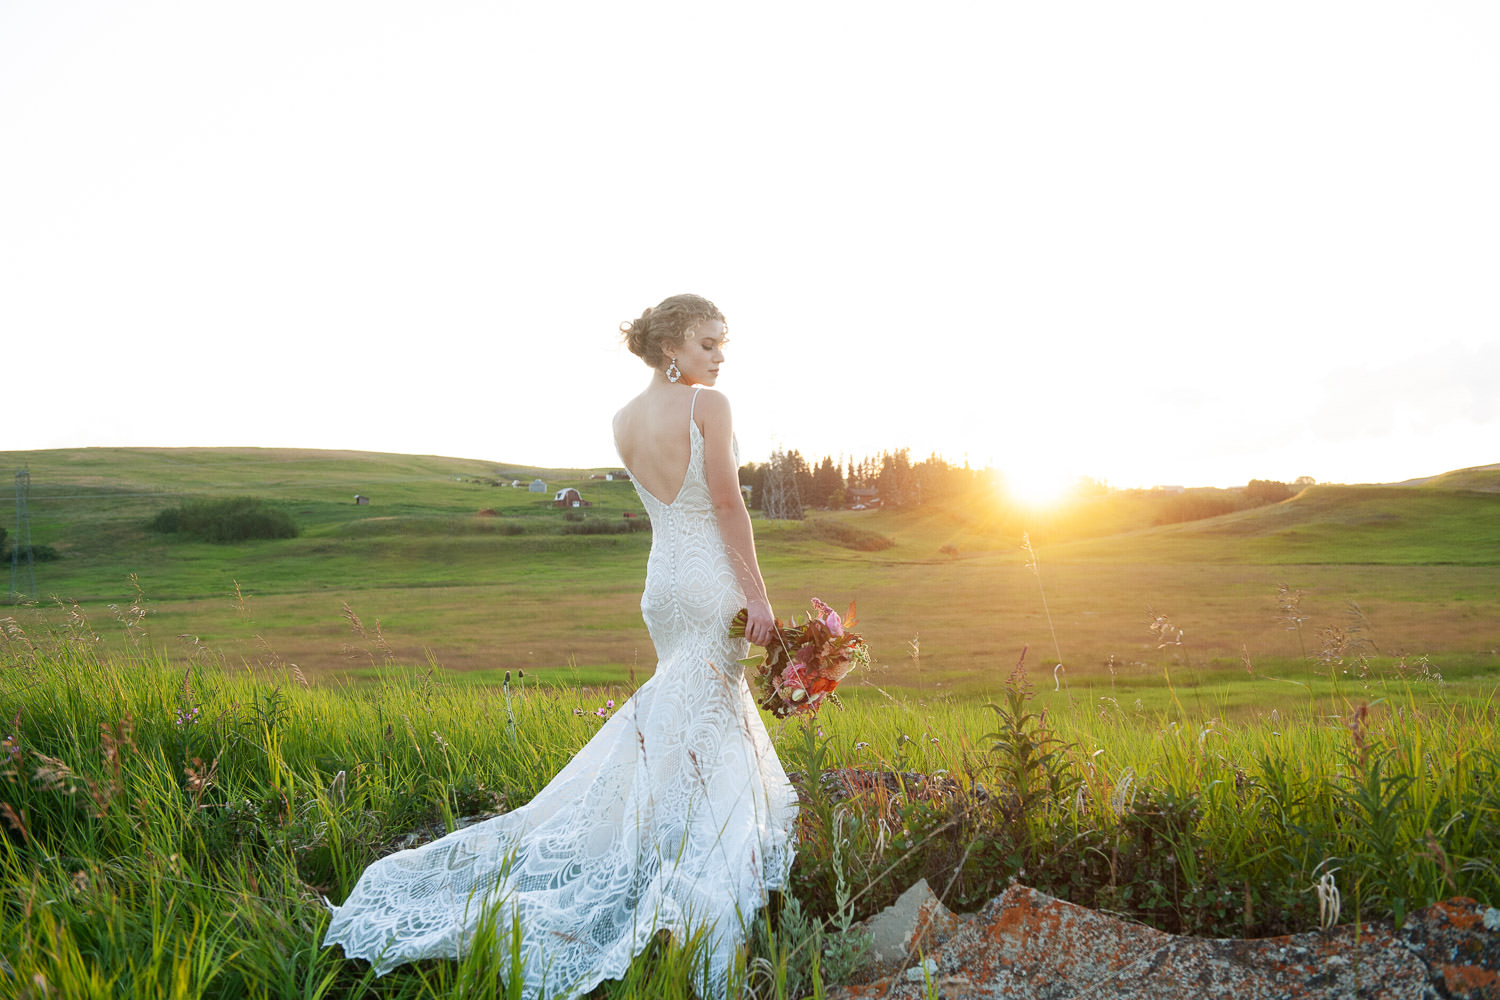 bride at sunset wearing lace gown by Lis Simon captured by Tara Whittaker Photography